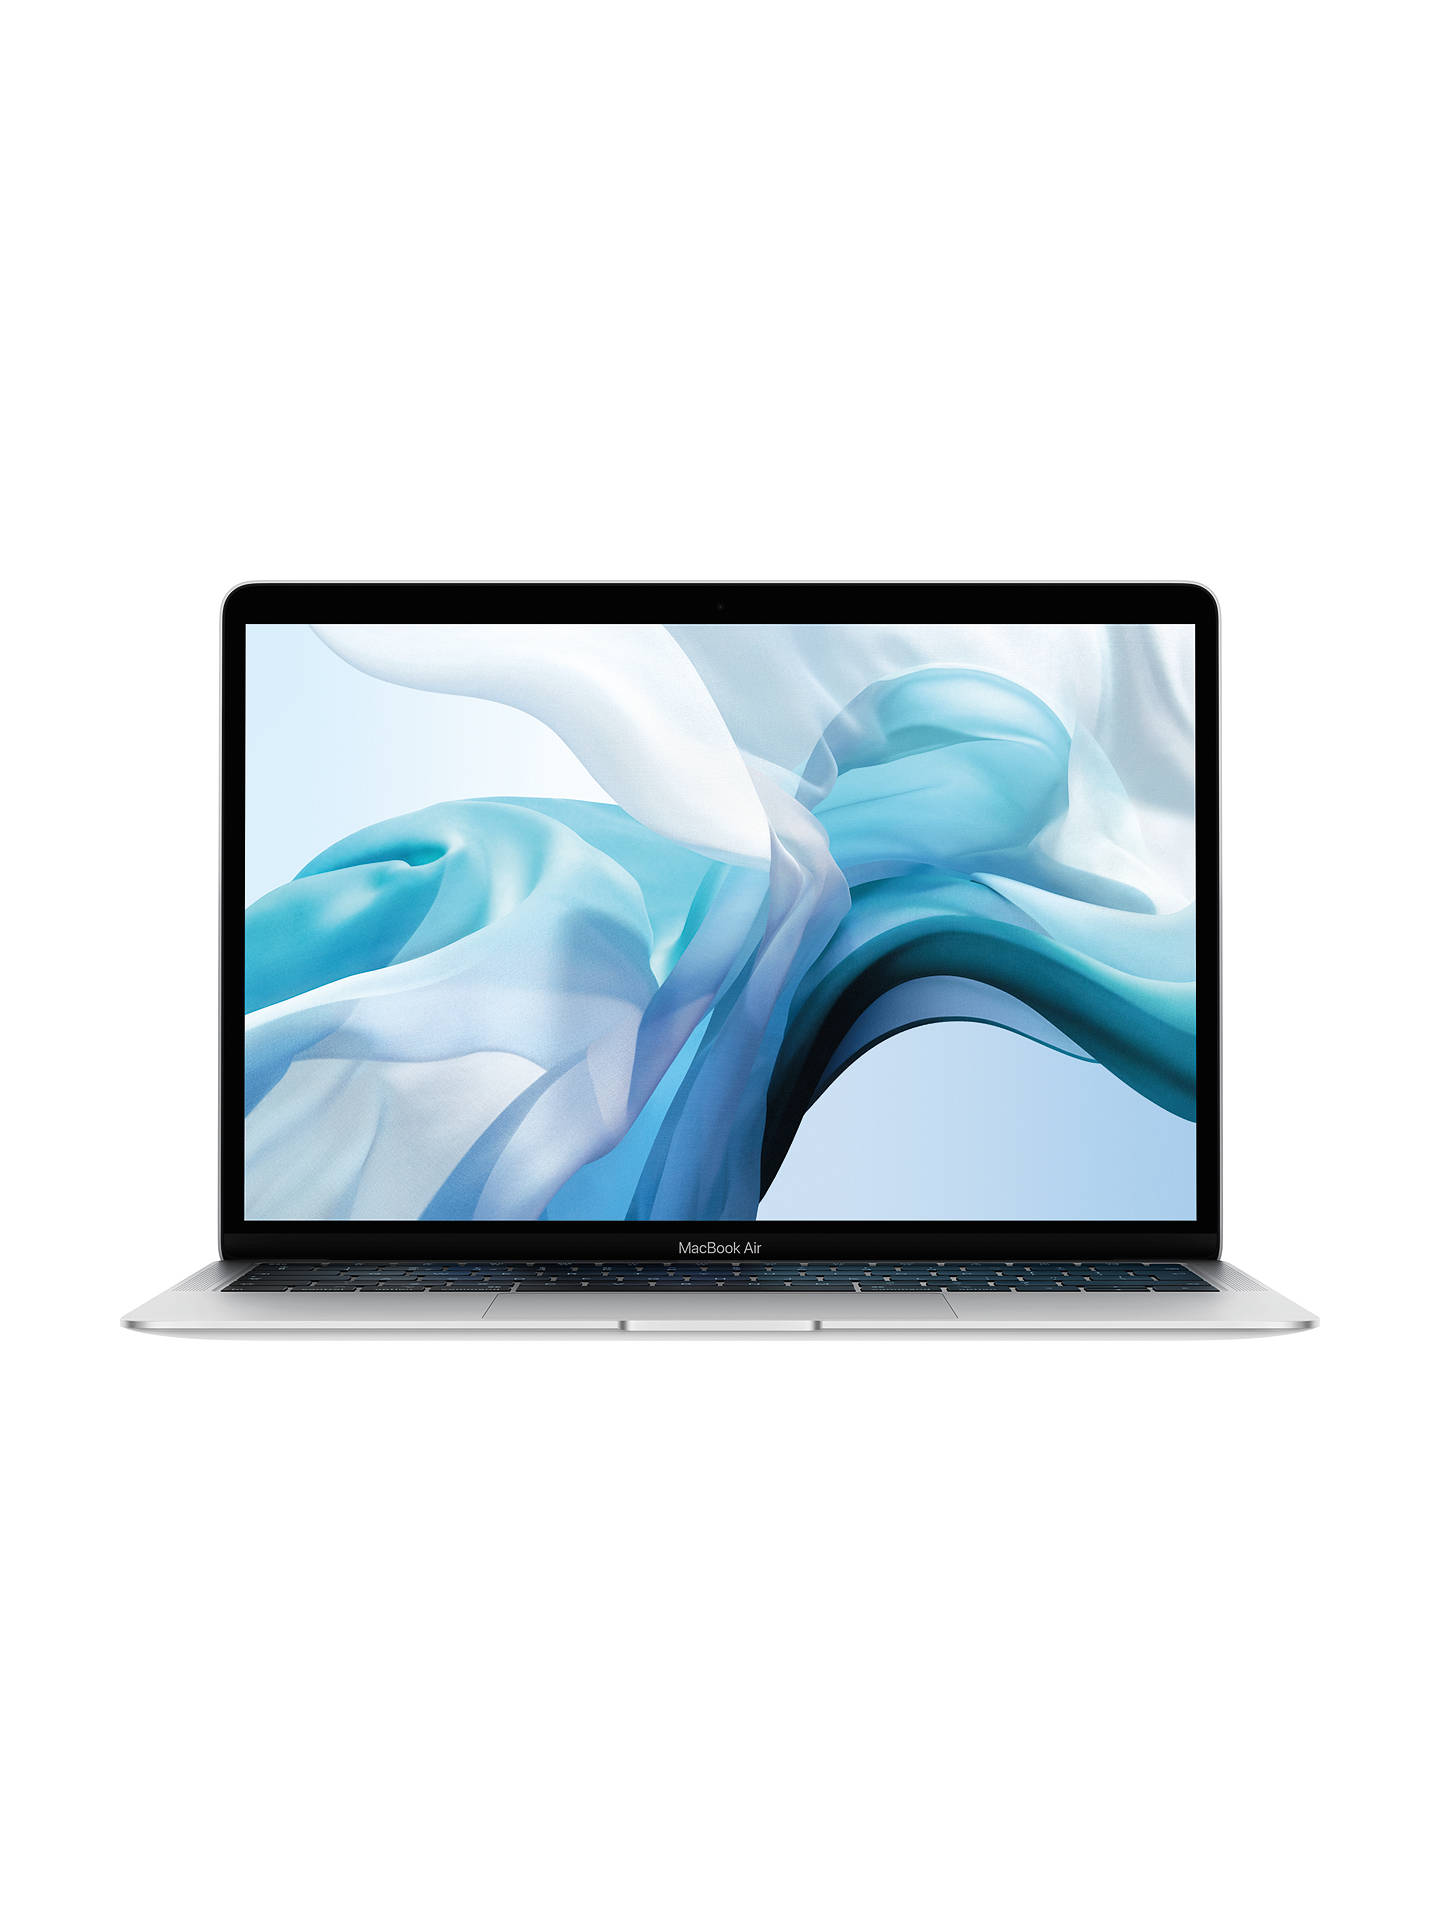 "2018 Apple MacBook Air 13.3"" Retina Display, Intel Core i5, 8GB RAM, 128GB SSD, Silver"